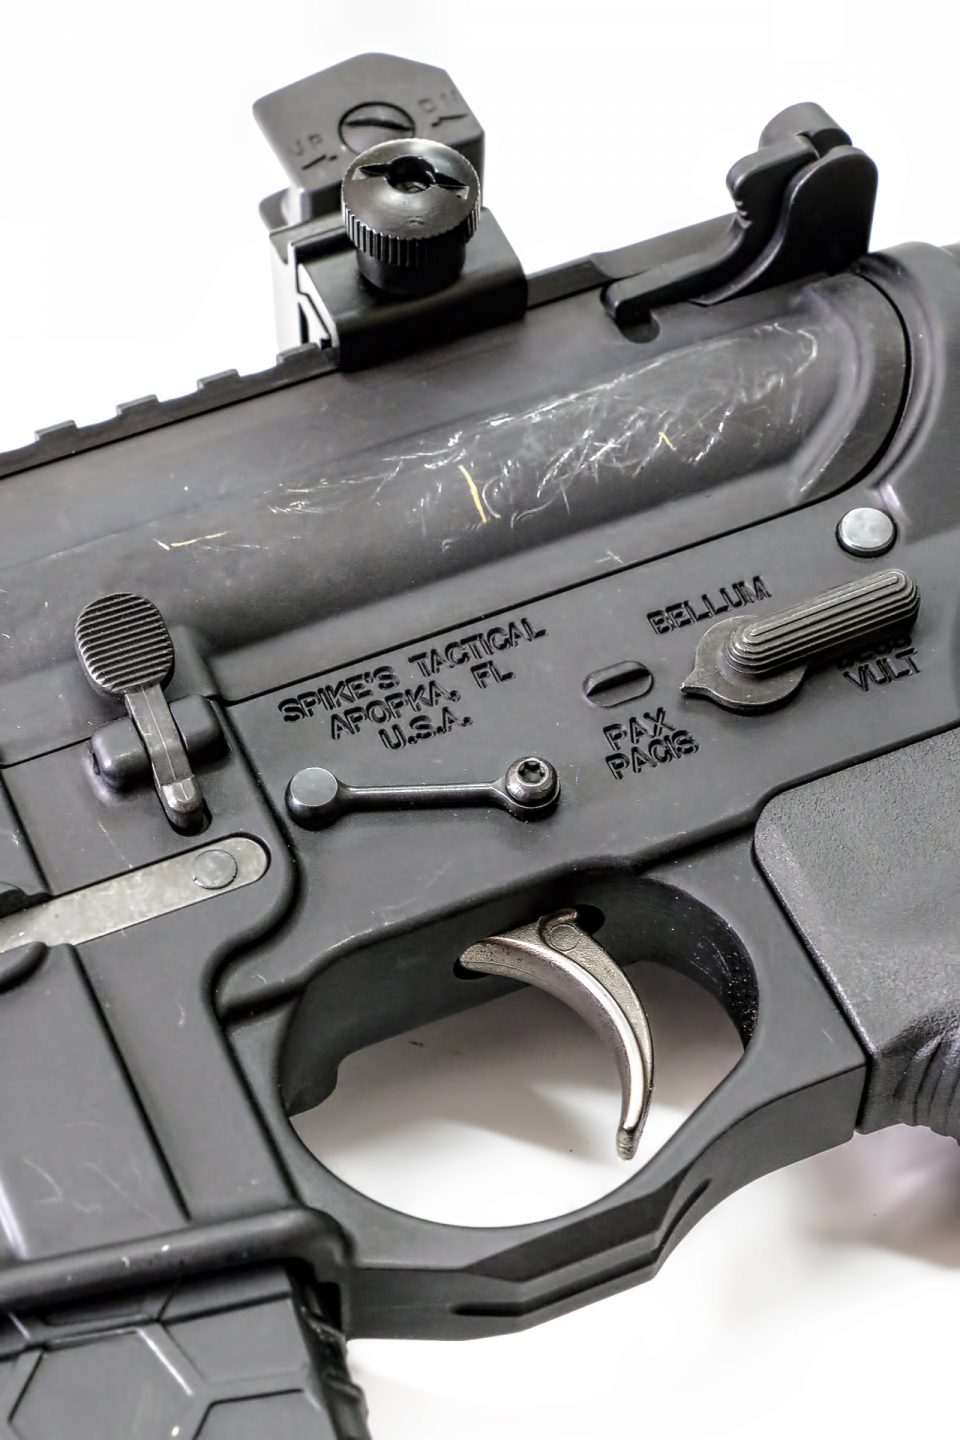 SPIKES-TACTICAL-CRUSADER-Mod-ST-15-up-2 – グアムの射撃ツアー 公式